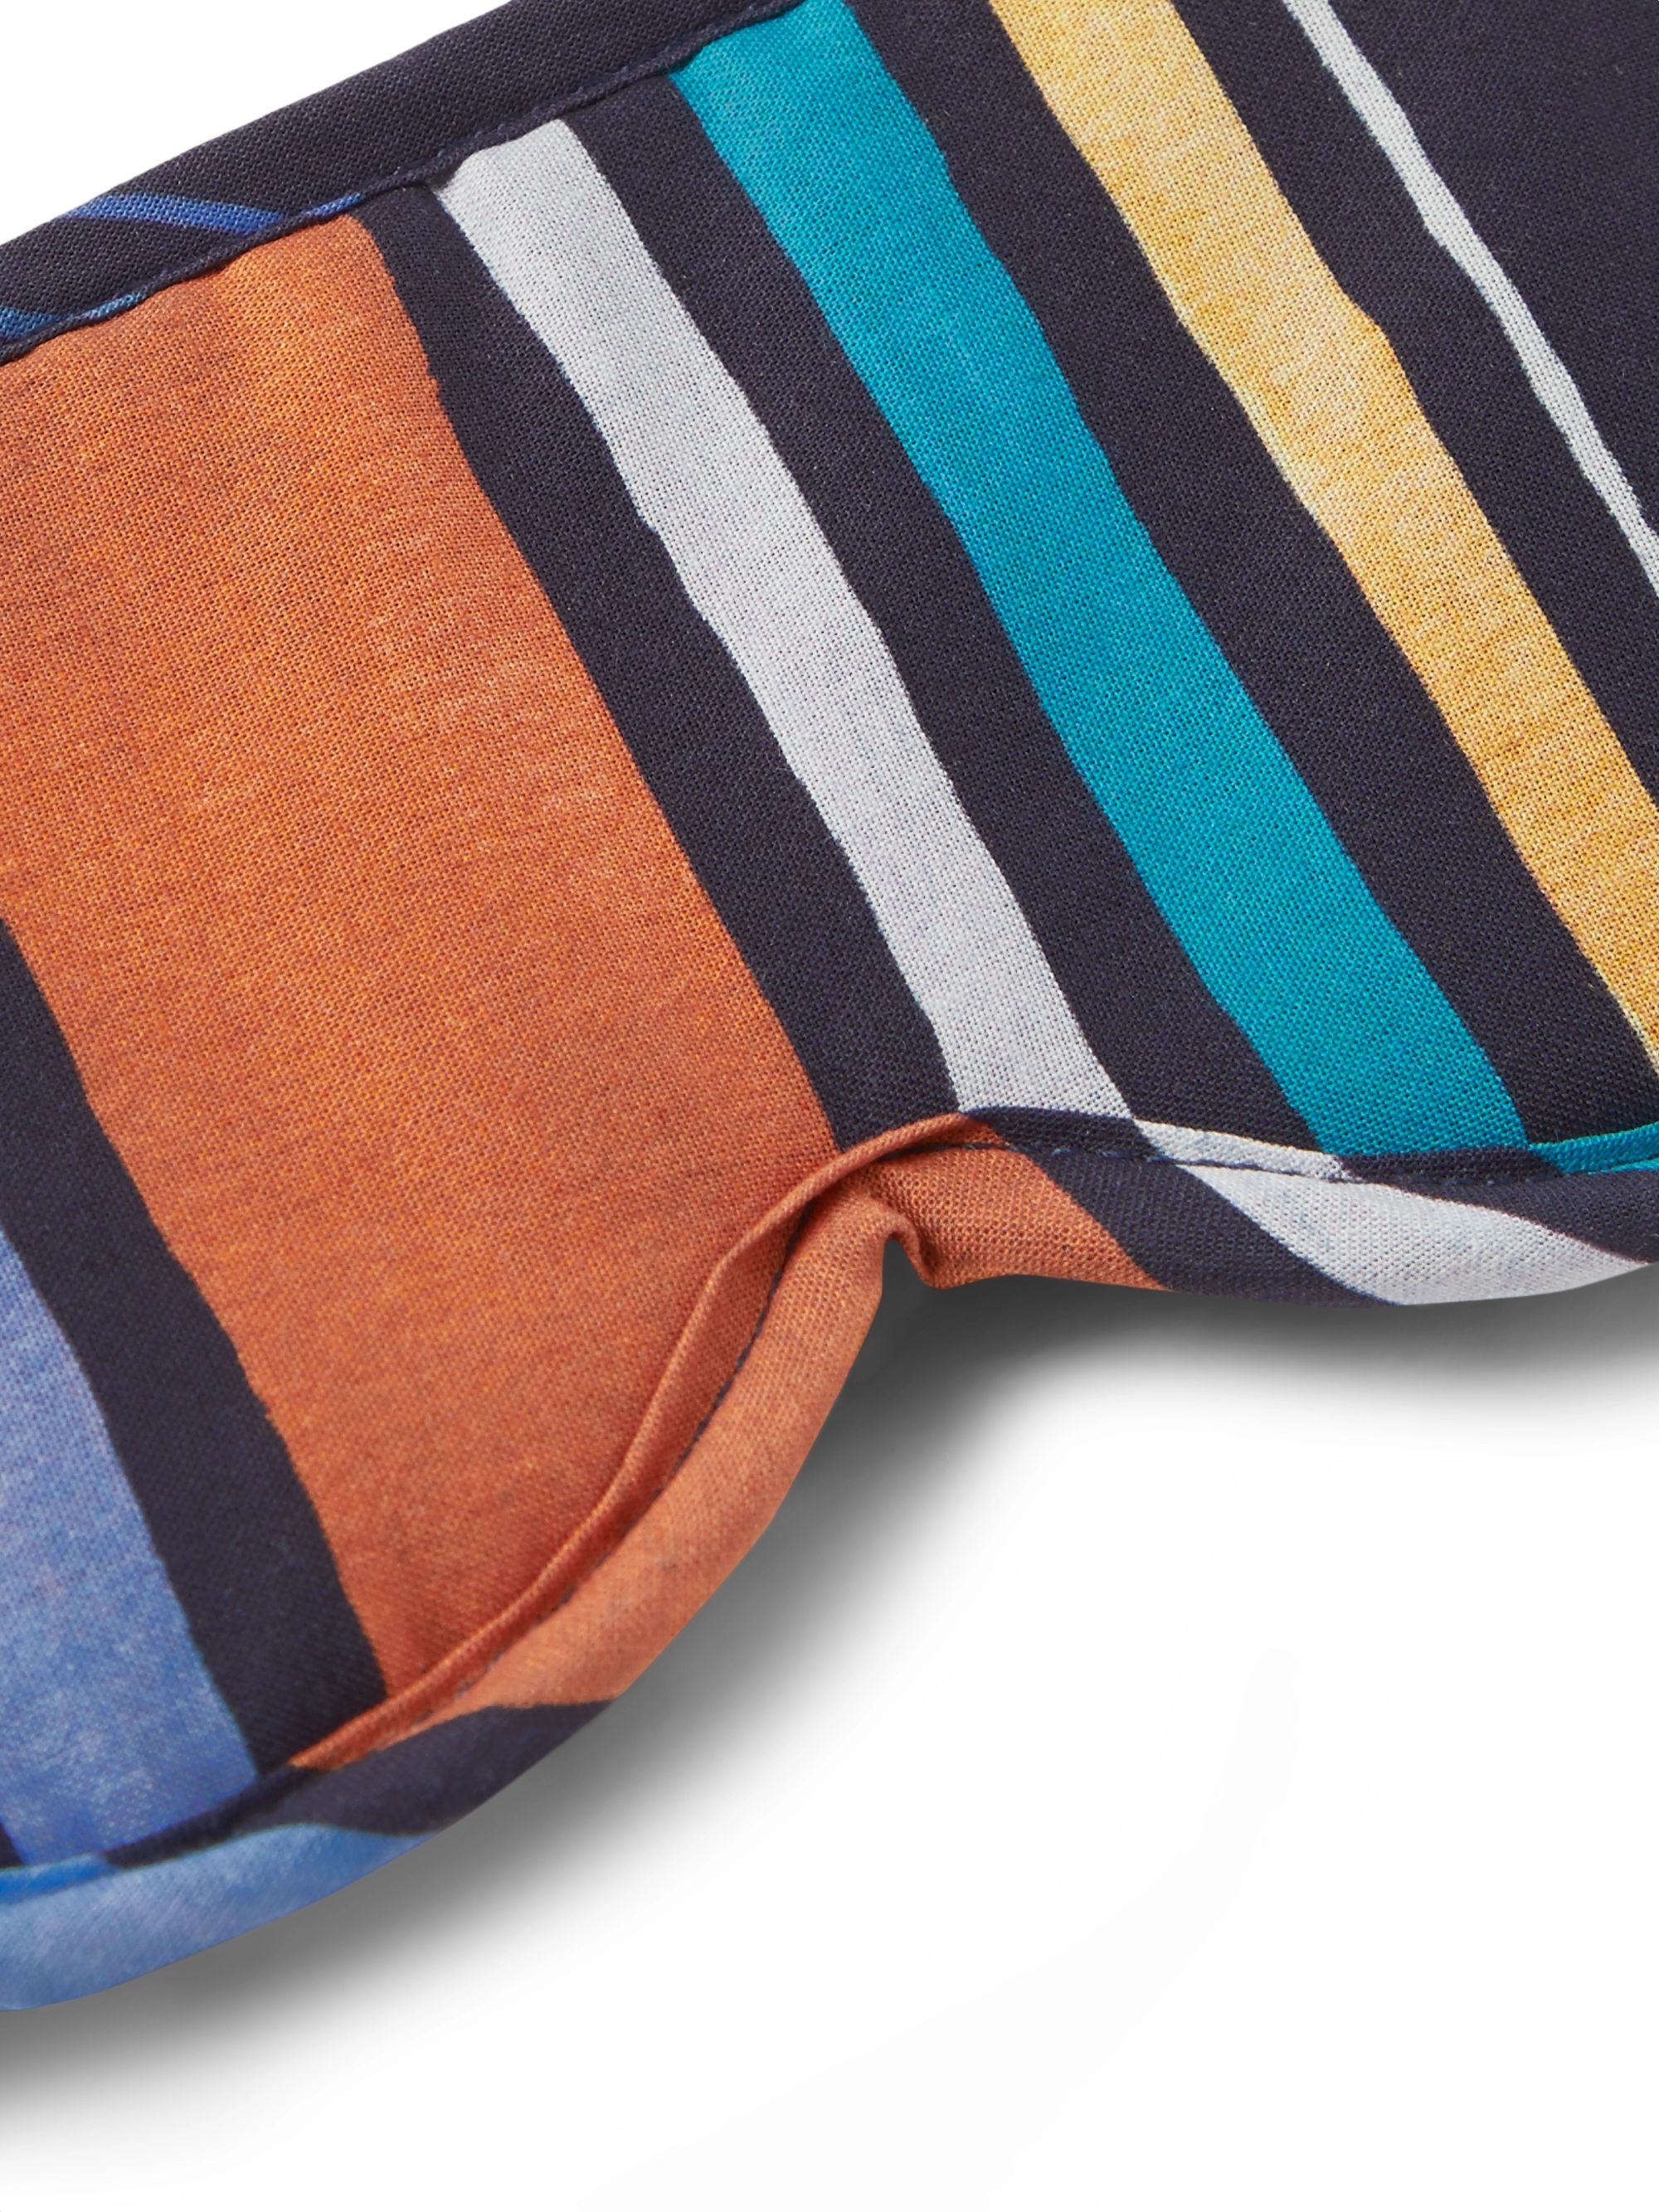 Desmond & Dempsey Striped Cotton Eye Mask